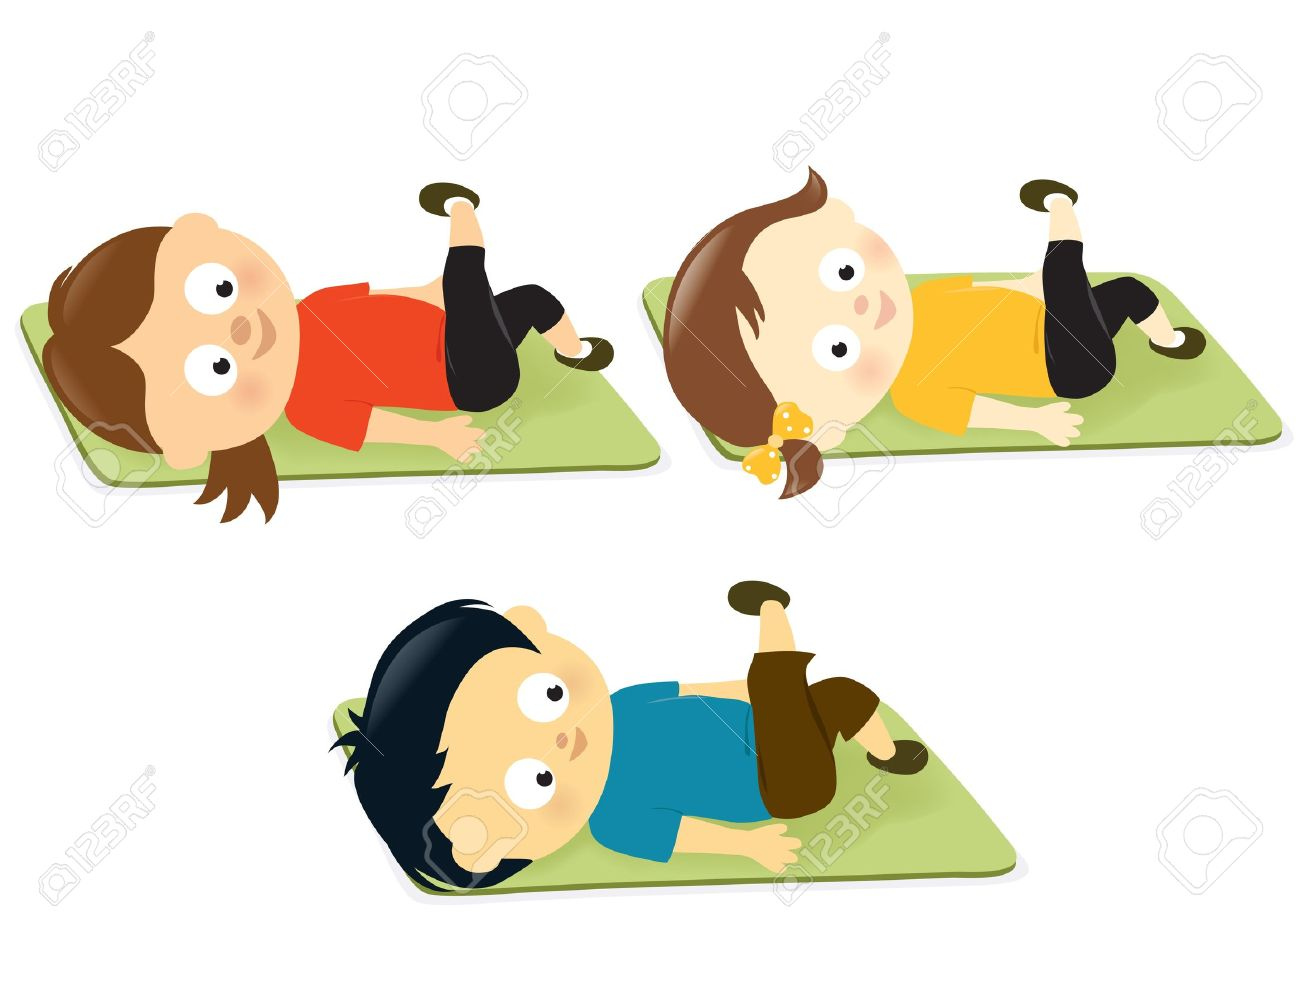 illustration of kids exercising on mats stock vector 17573383 - Exercise Pictures For Kids